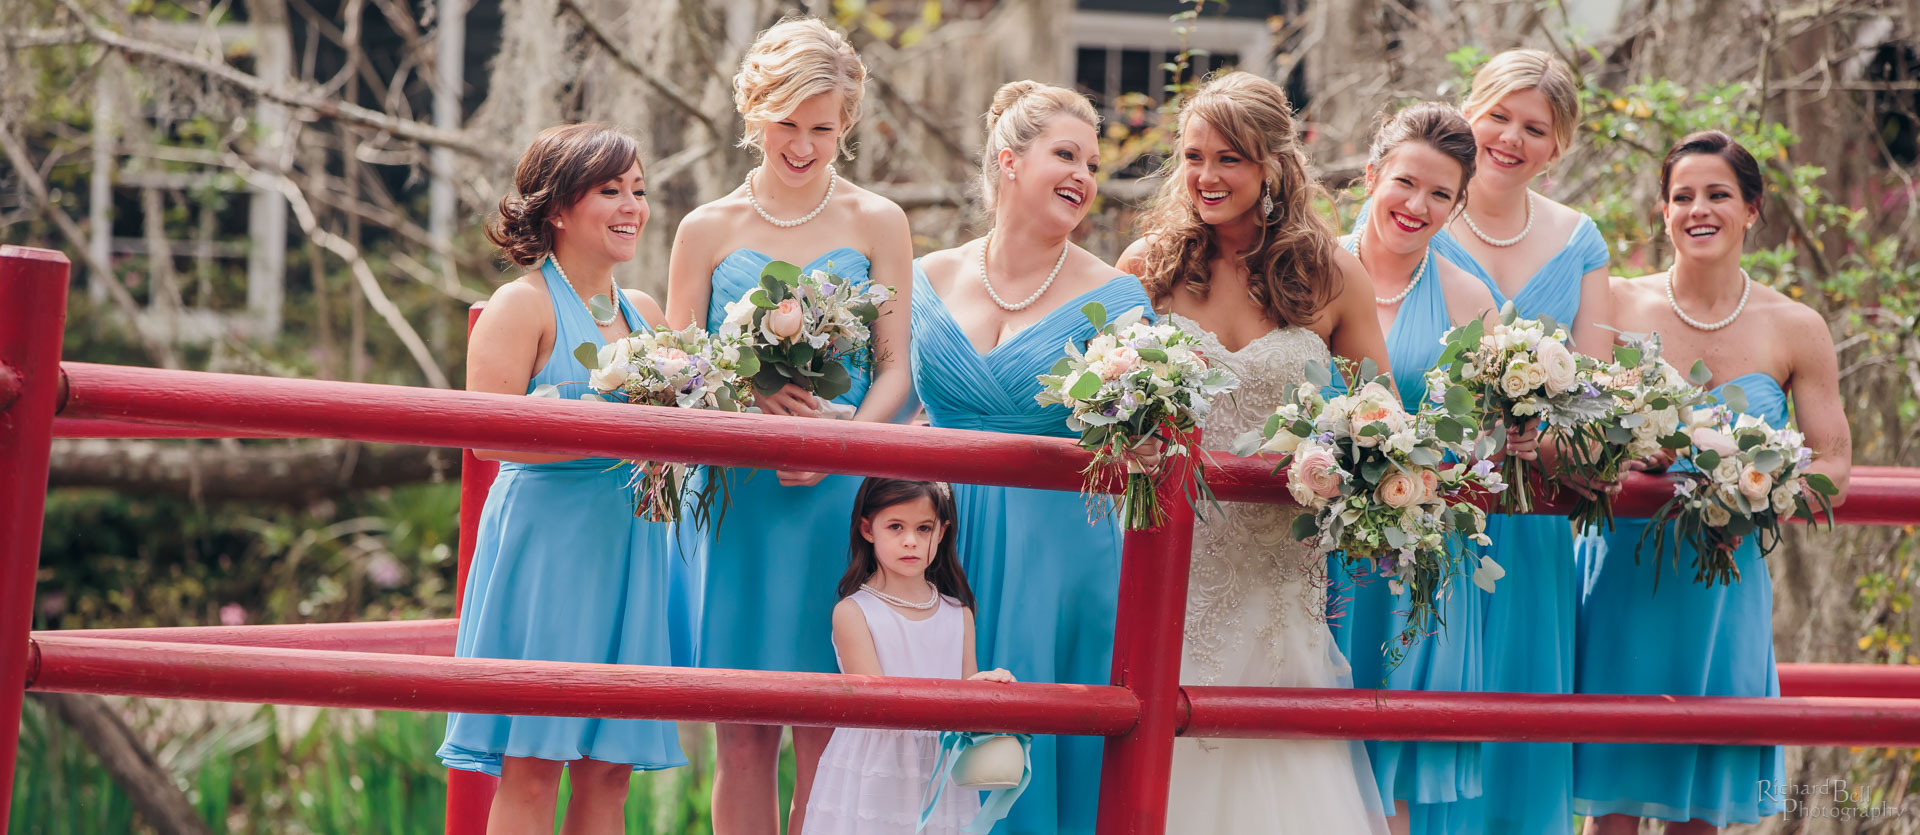 Bride with Bridesmaids on Red Bridge